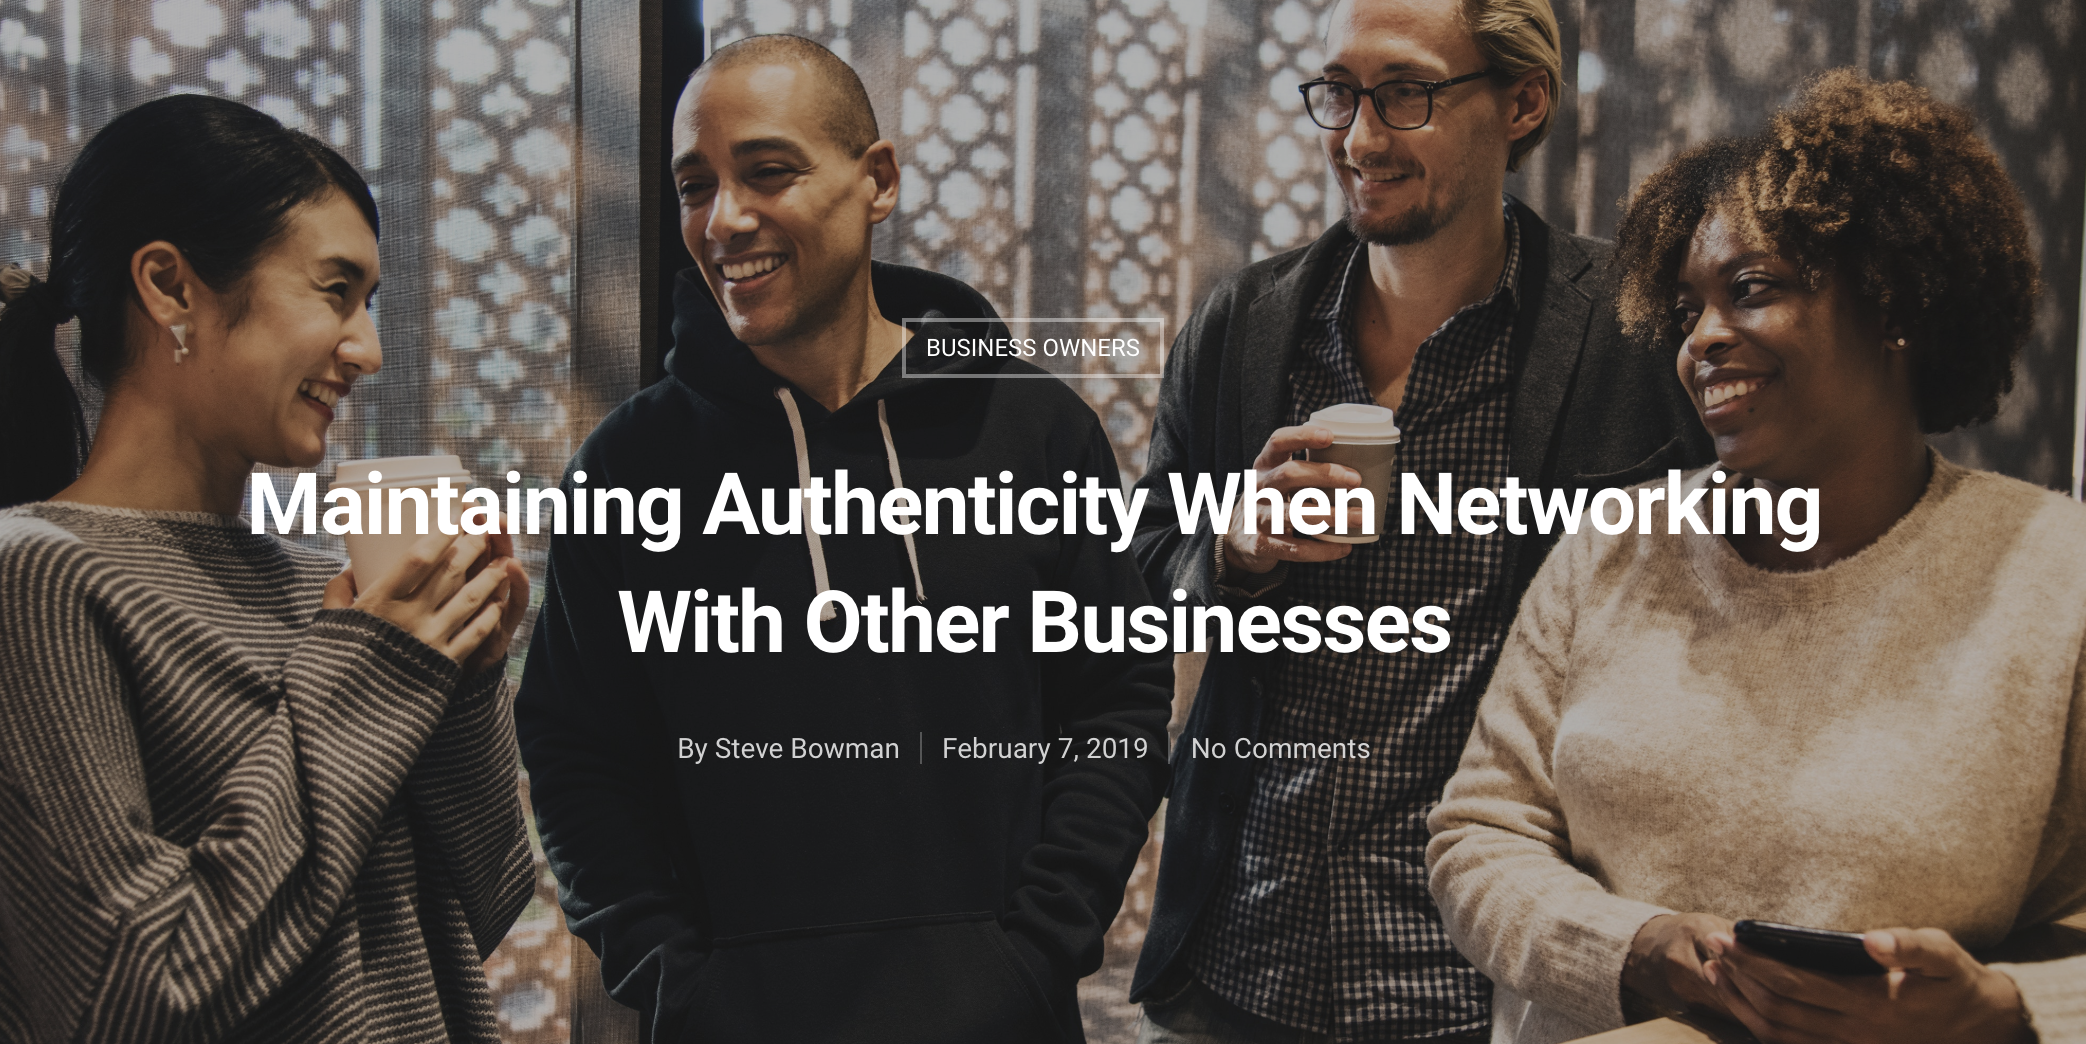 Maintaining Authenticity When Networking With Other